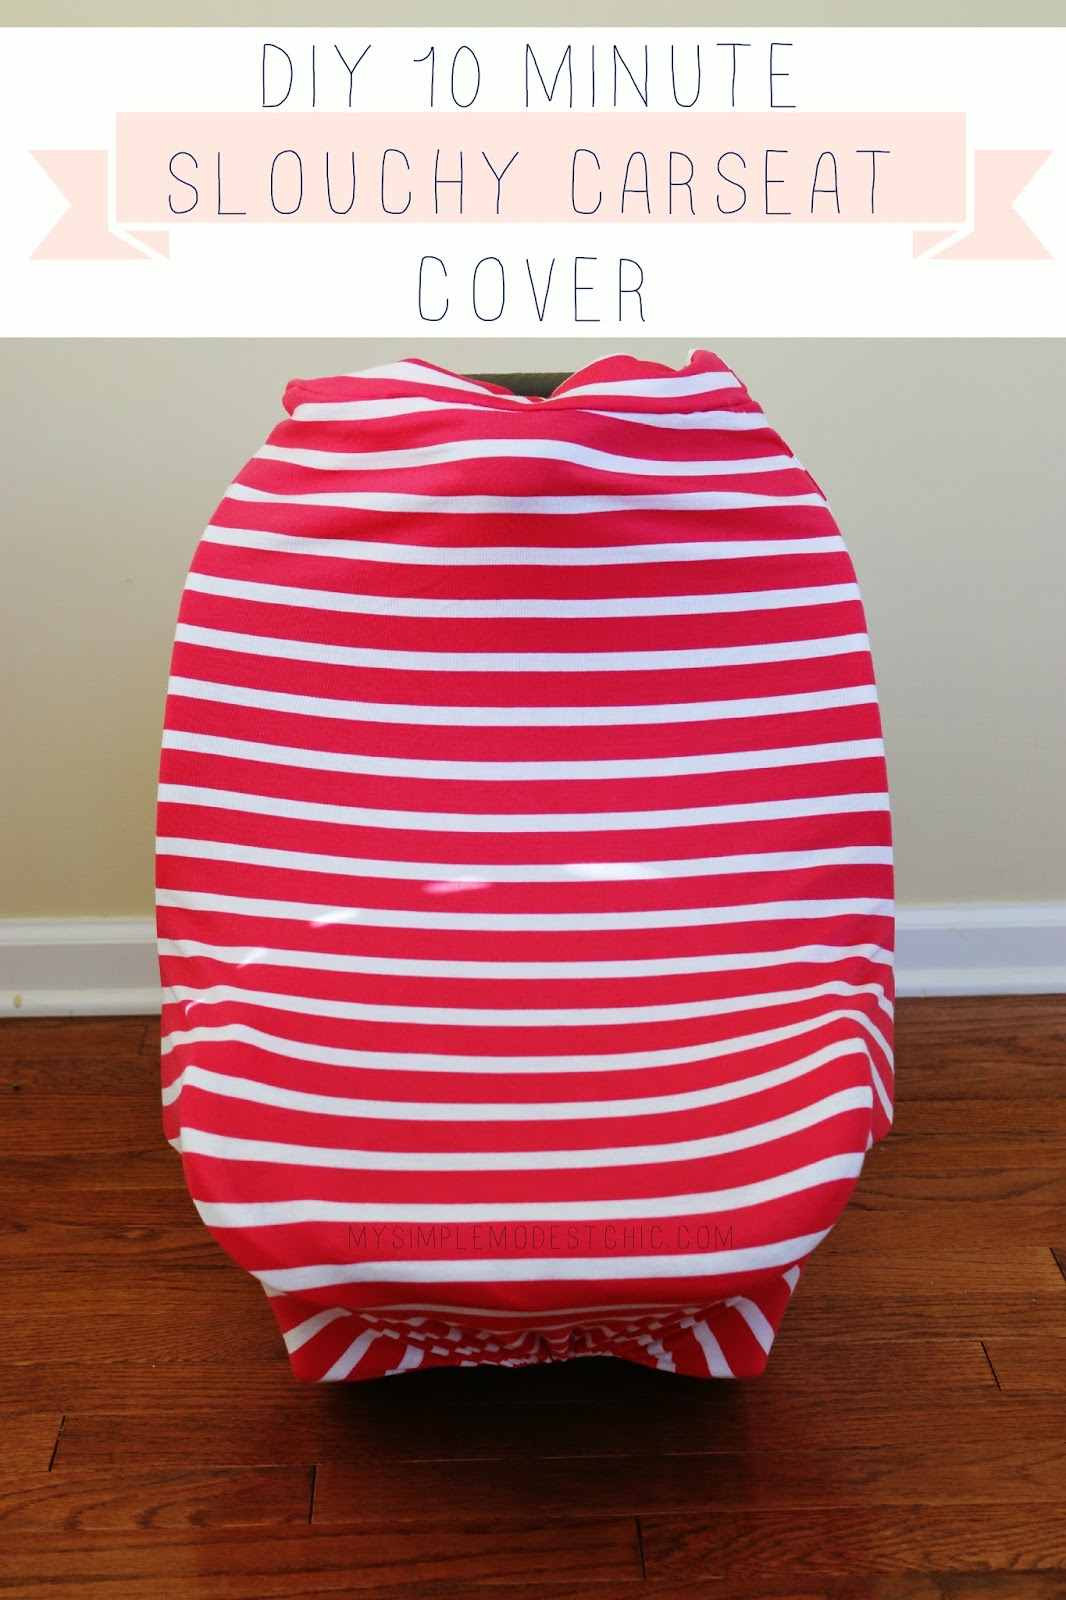 My Simple Modest Chic 10 Minute Diy Slouchy Car Seat Cover